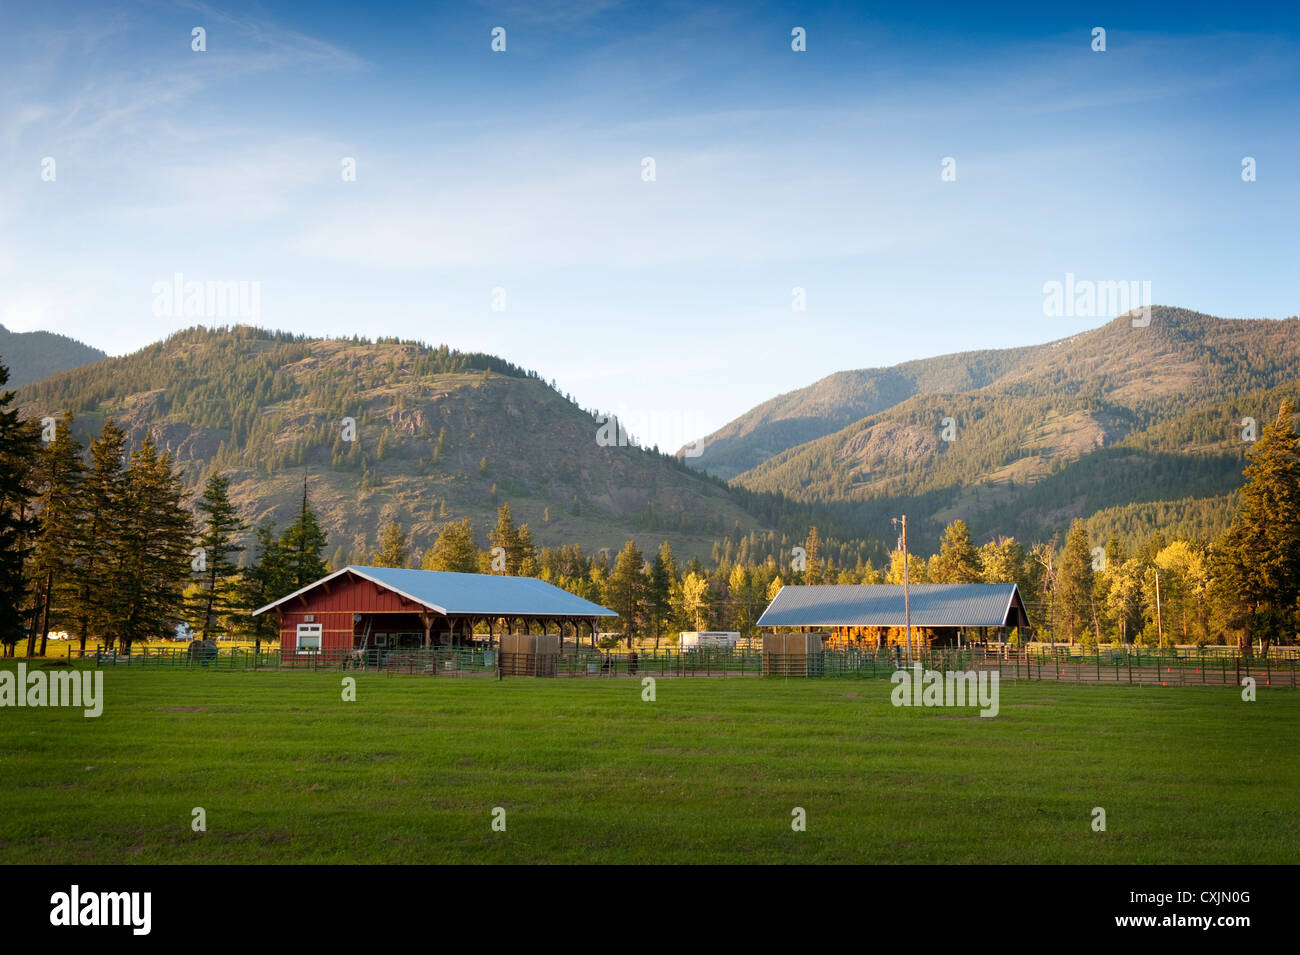 A Western Horse Ranch Nestled In The Hills Of The North Cascade Stock Photo Alamy